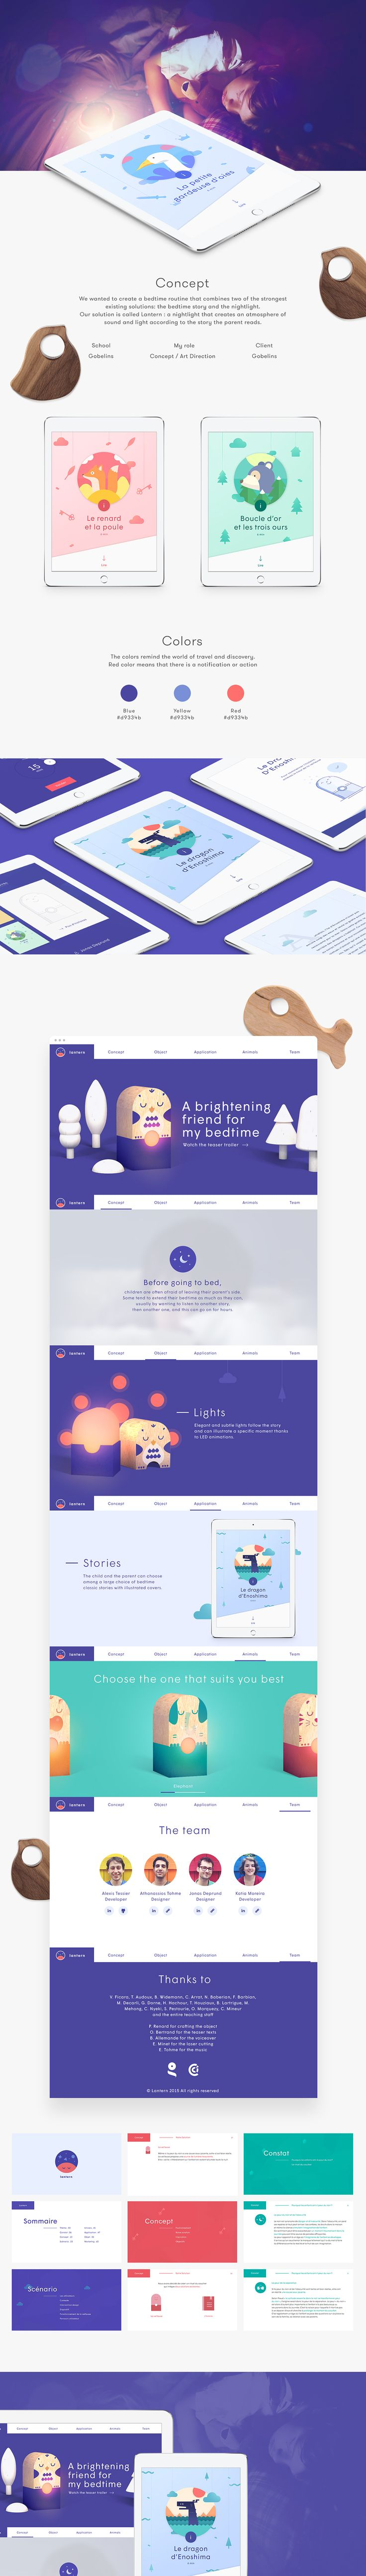 Lantern on Web Design Served